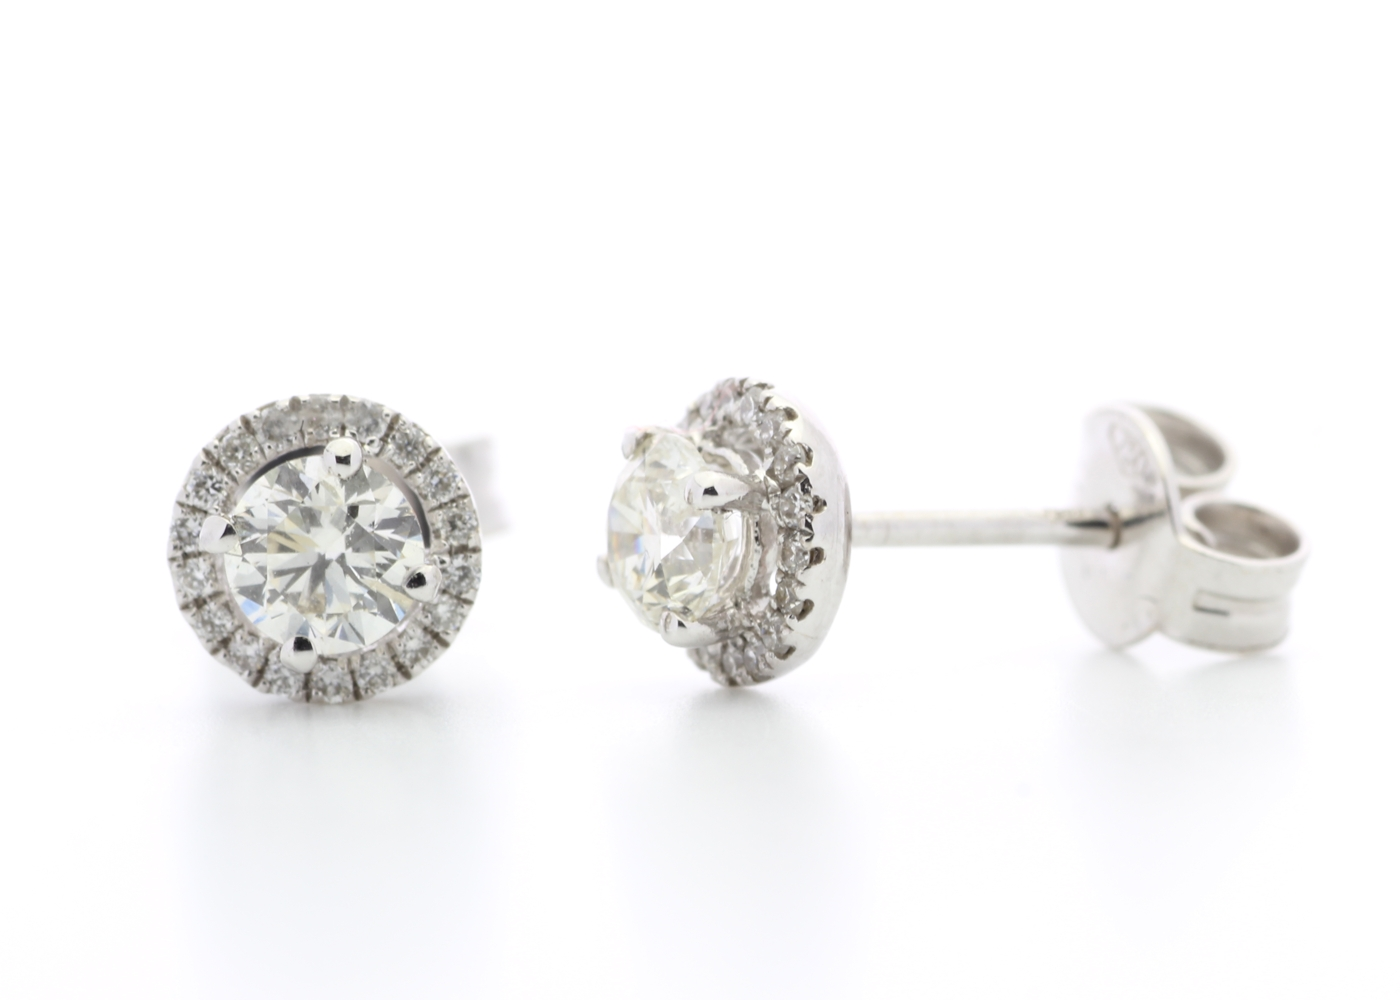 Lot 32 - 18ct White Gold Halo Set Earrings 0.65 Carats